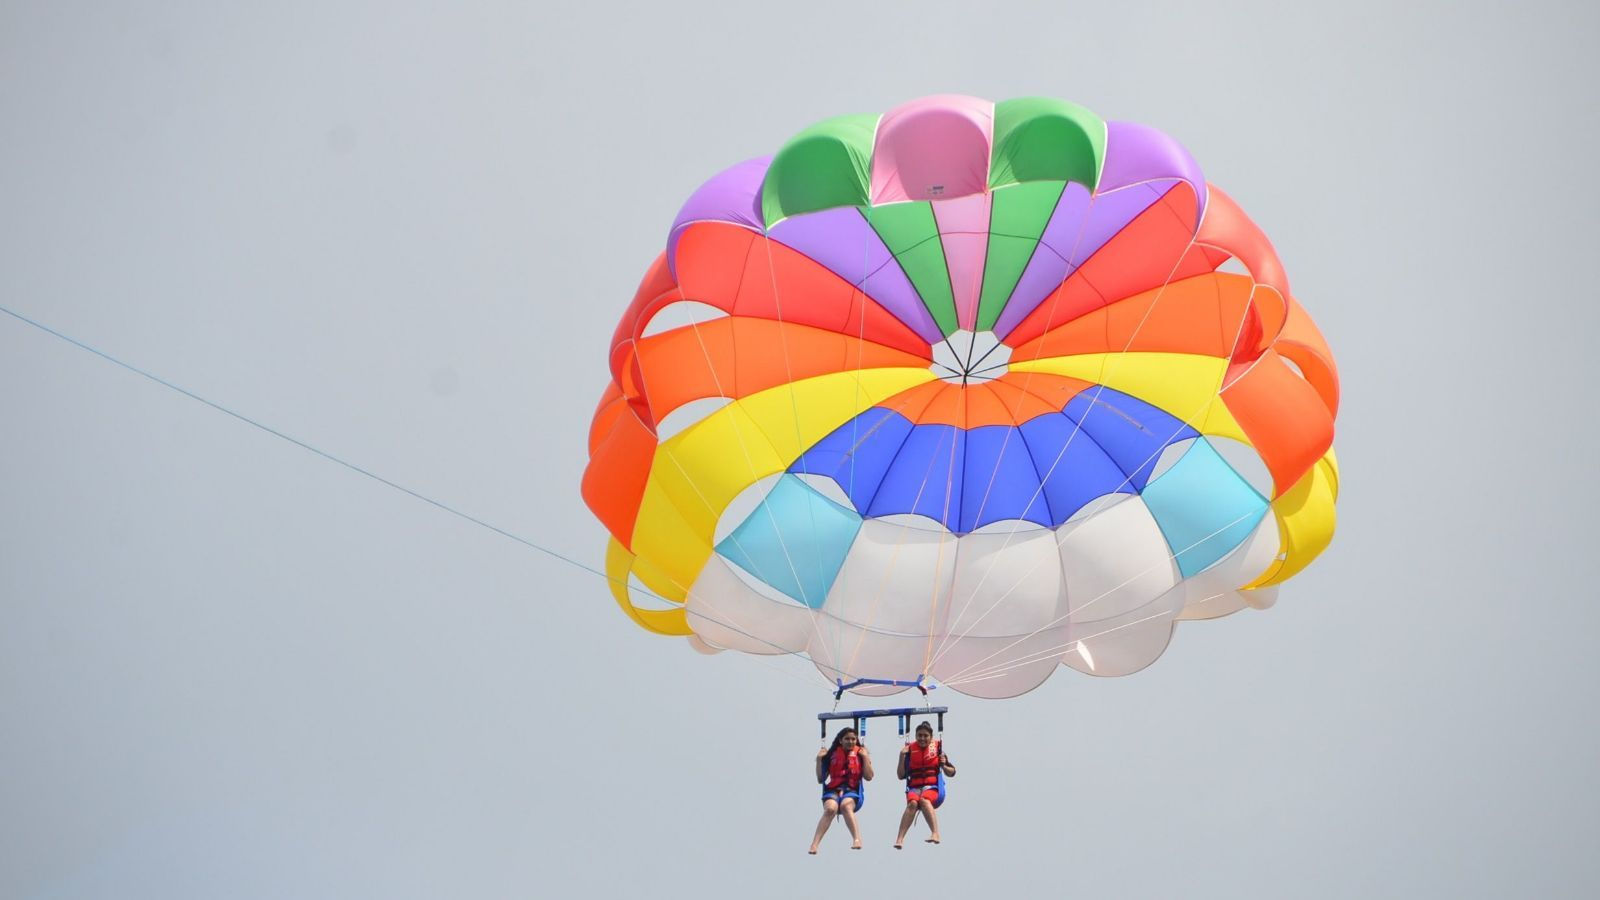 Experience the liberating sensation of parasailing as you glide above the islands, taking in the beauty of the Maldives, or get your adrenaline pumping with wind surfing. Qualified pros are on hand to get you cresting the waves on one of the Maldives' bes